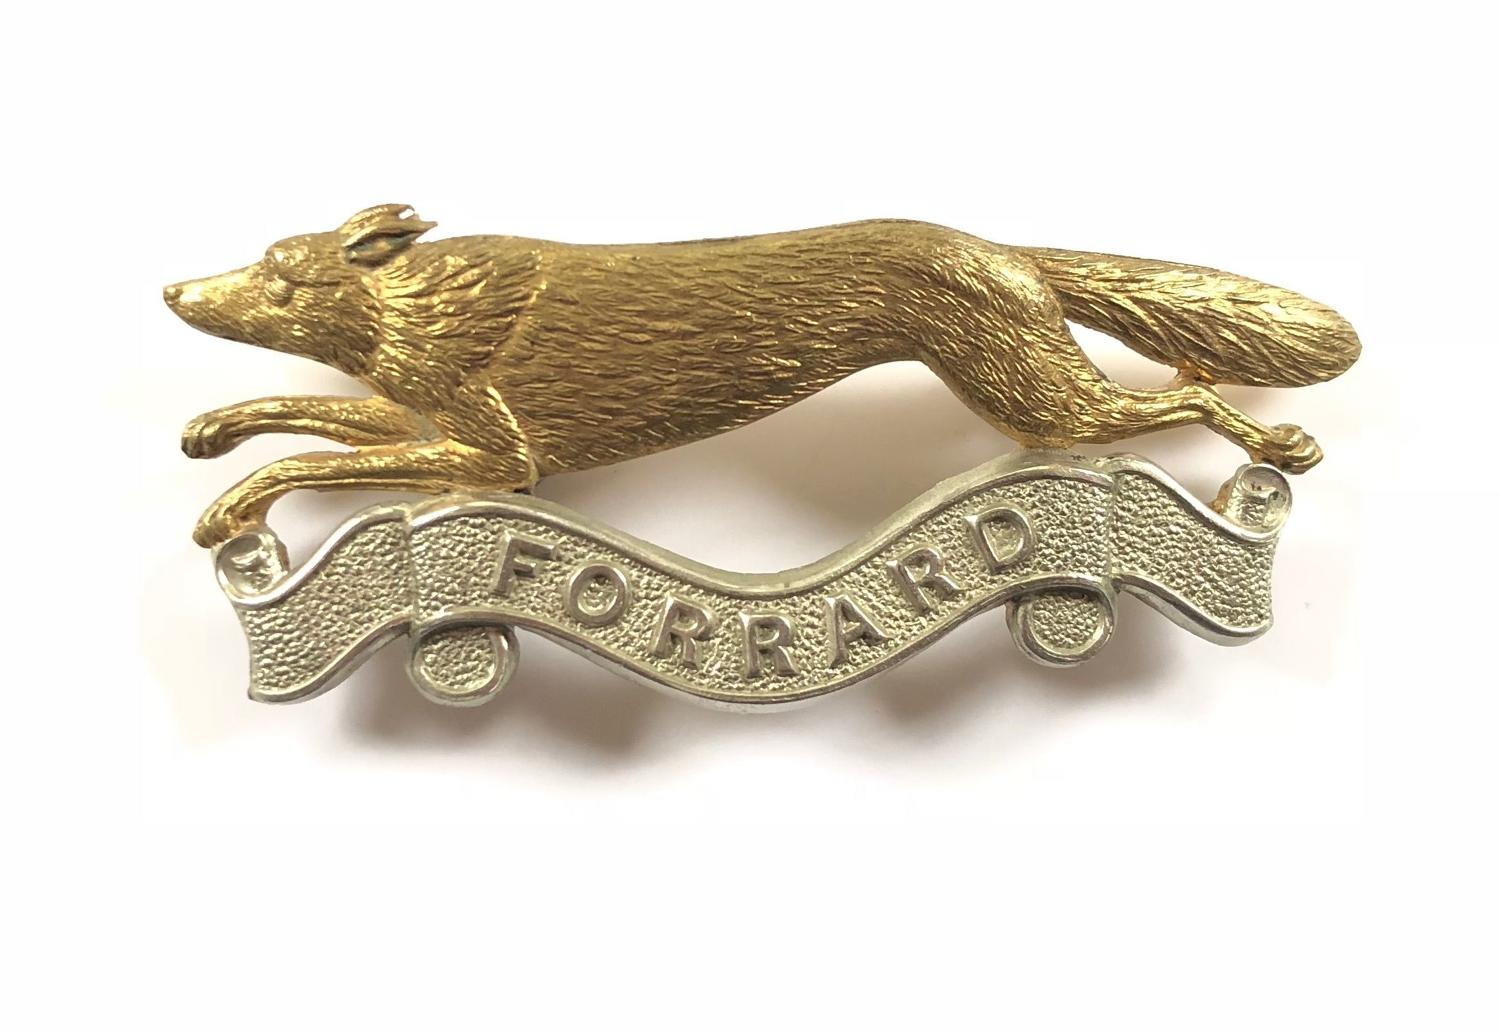 East Riding of Yorkshire Yeomanry NCO's arm badge